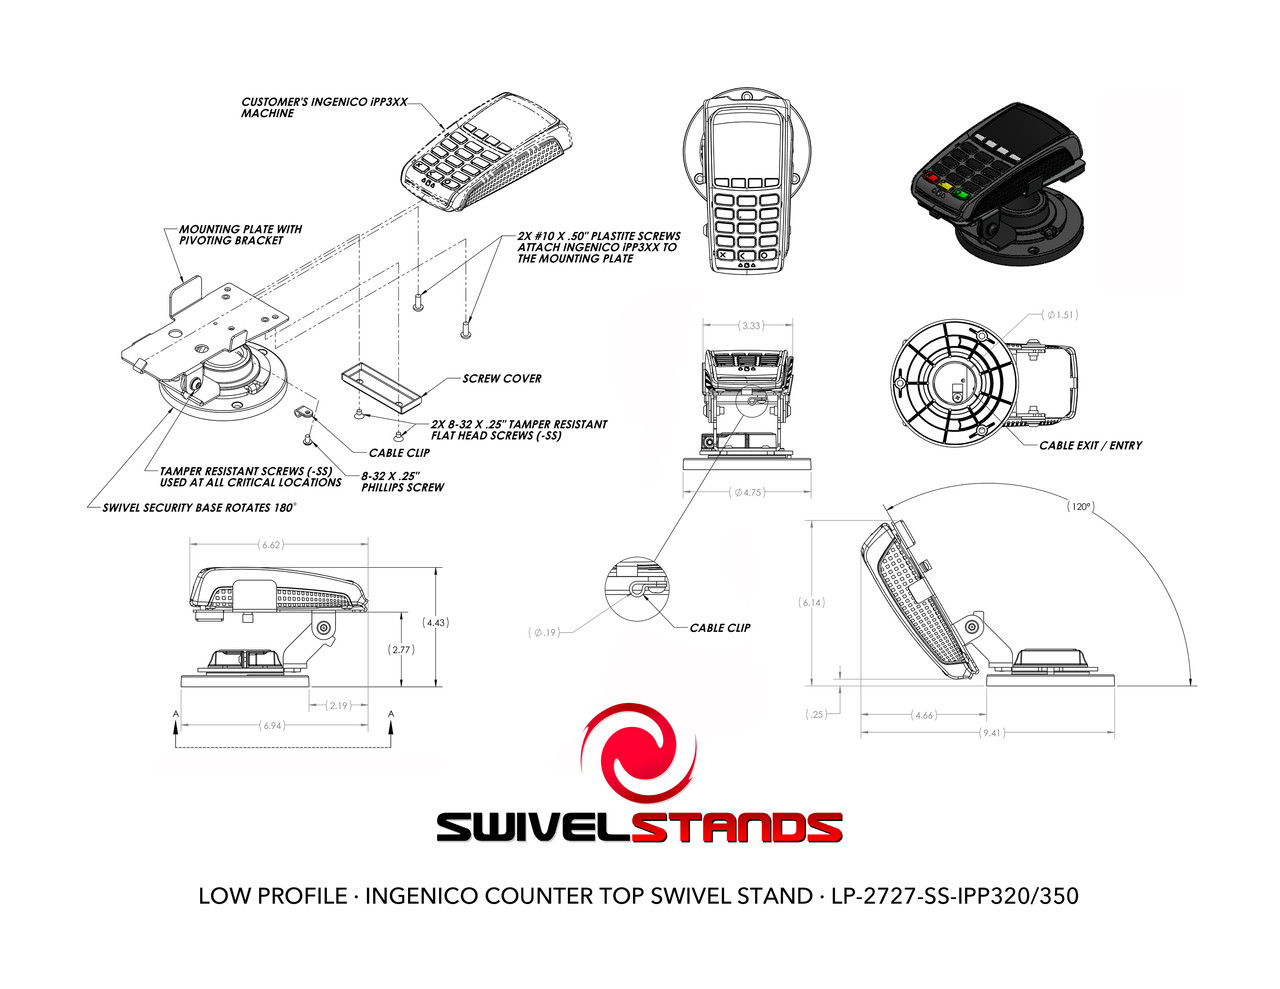 Swivel Stands Credit Card Stand Low Profile Ingenico iPP320 with Security Screws